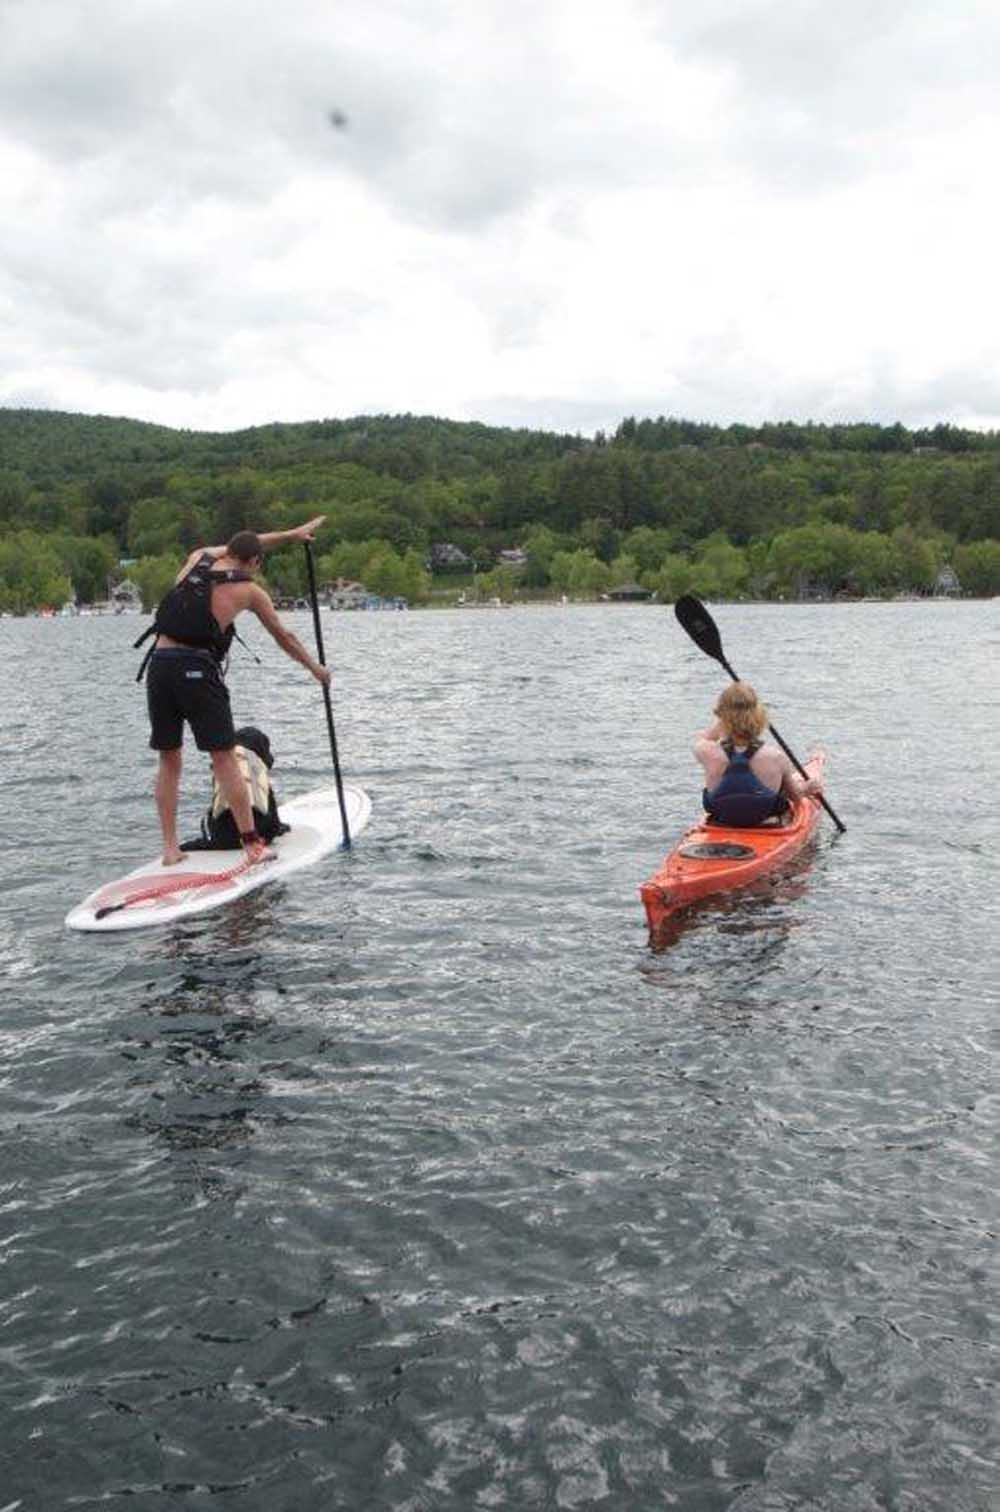 man on stand up paddle board with another man in kayak